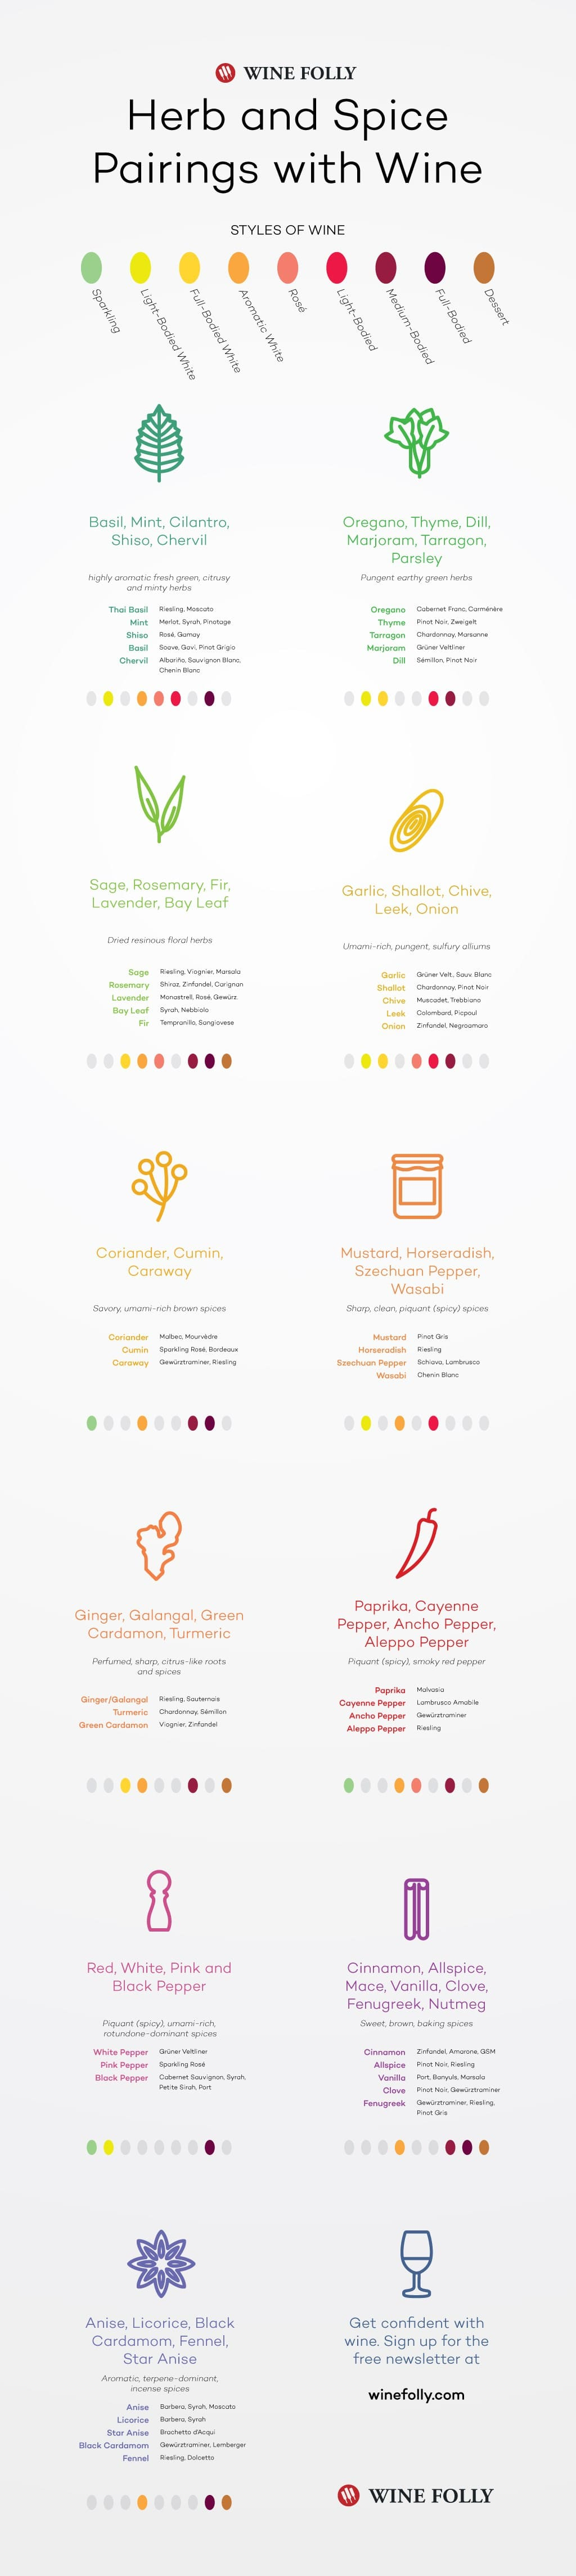 Herb-Spice-Pairing-Wine-Folly